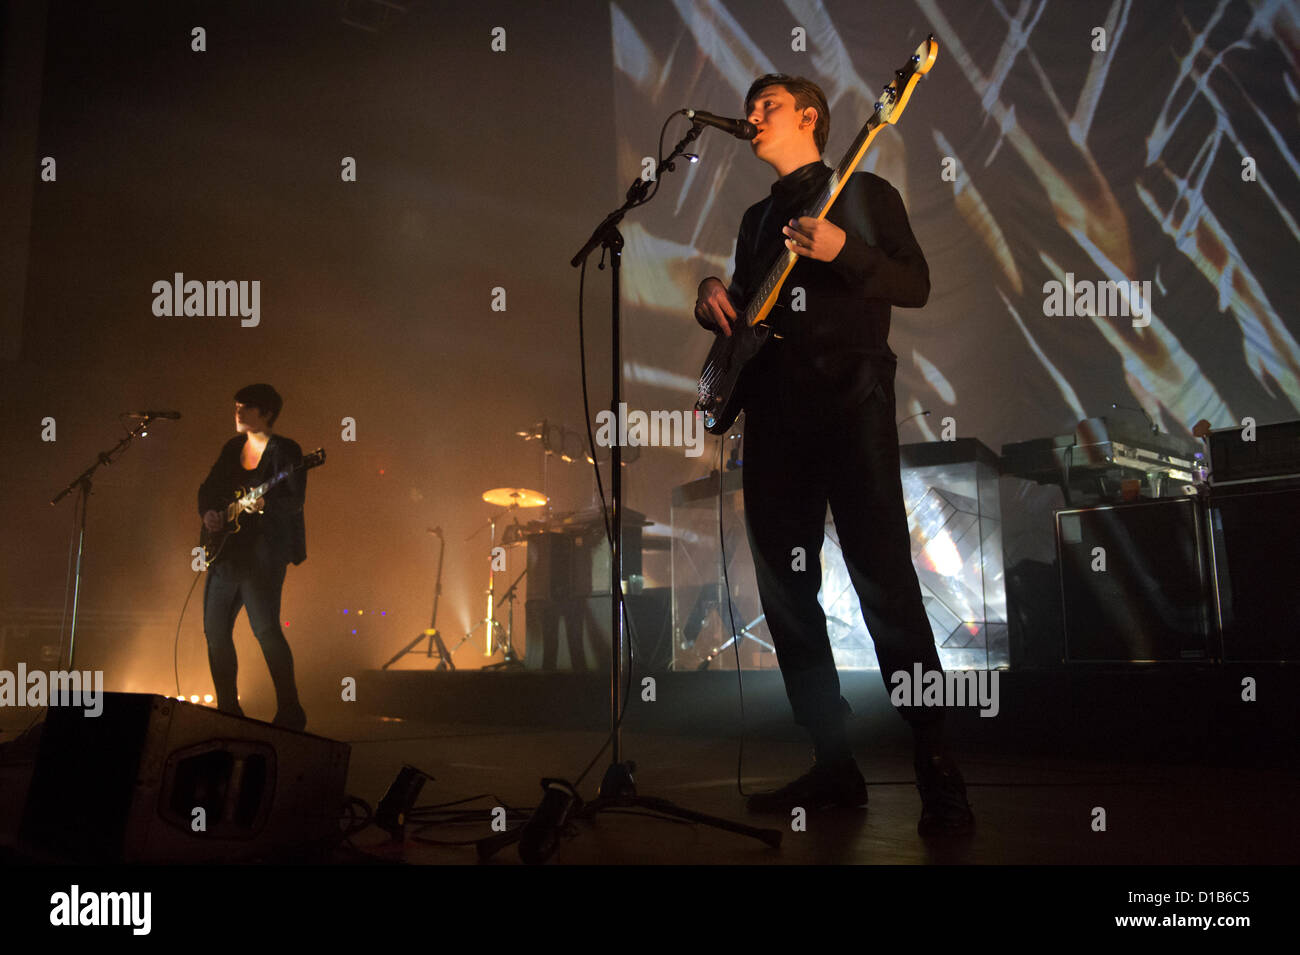 Wolverhampton, UK. 12th December 2012. Romy Madley Croft and Oliver Sim performing with their indie band The xx - Stock Image